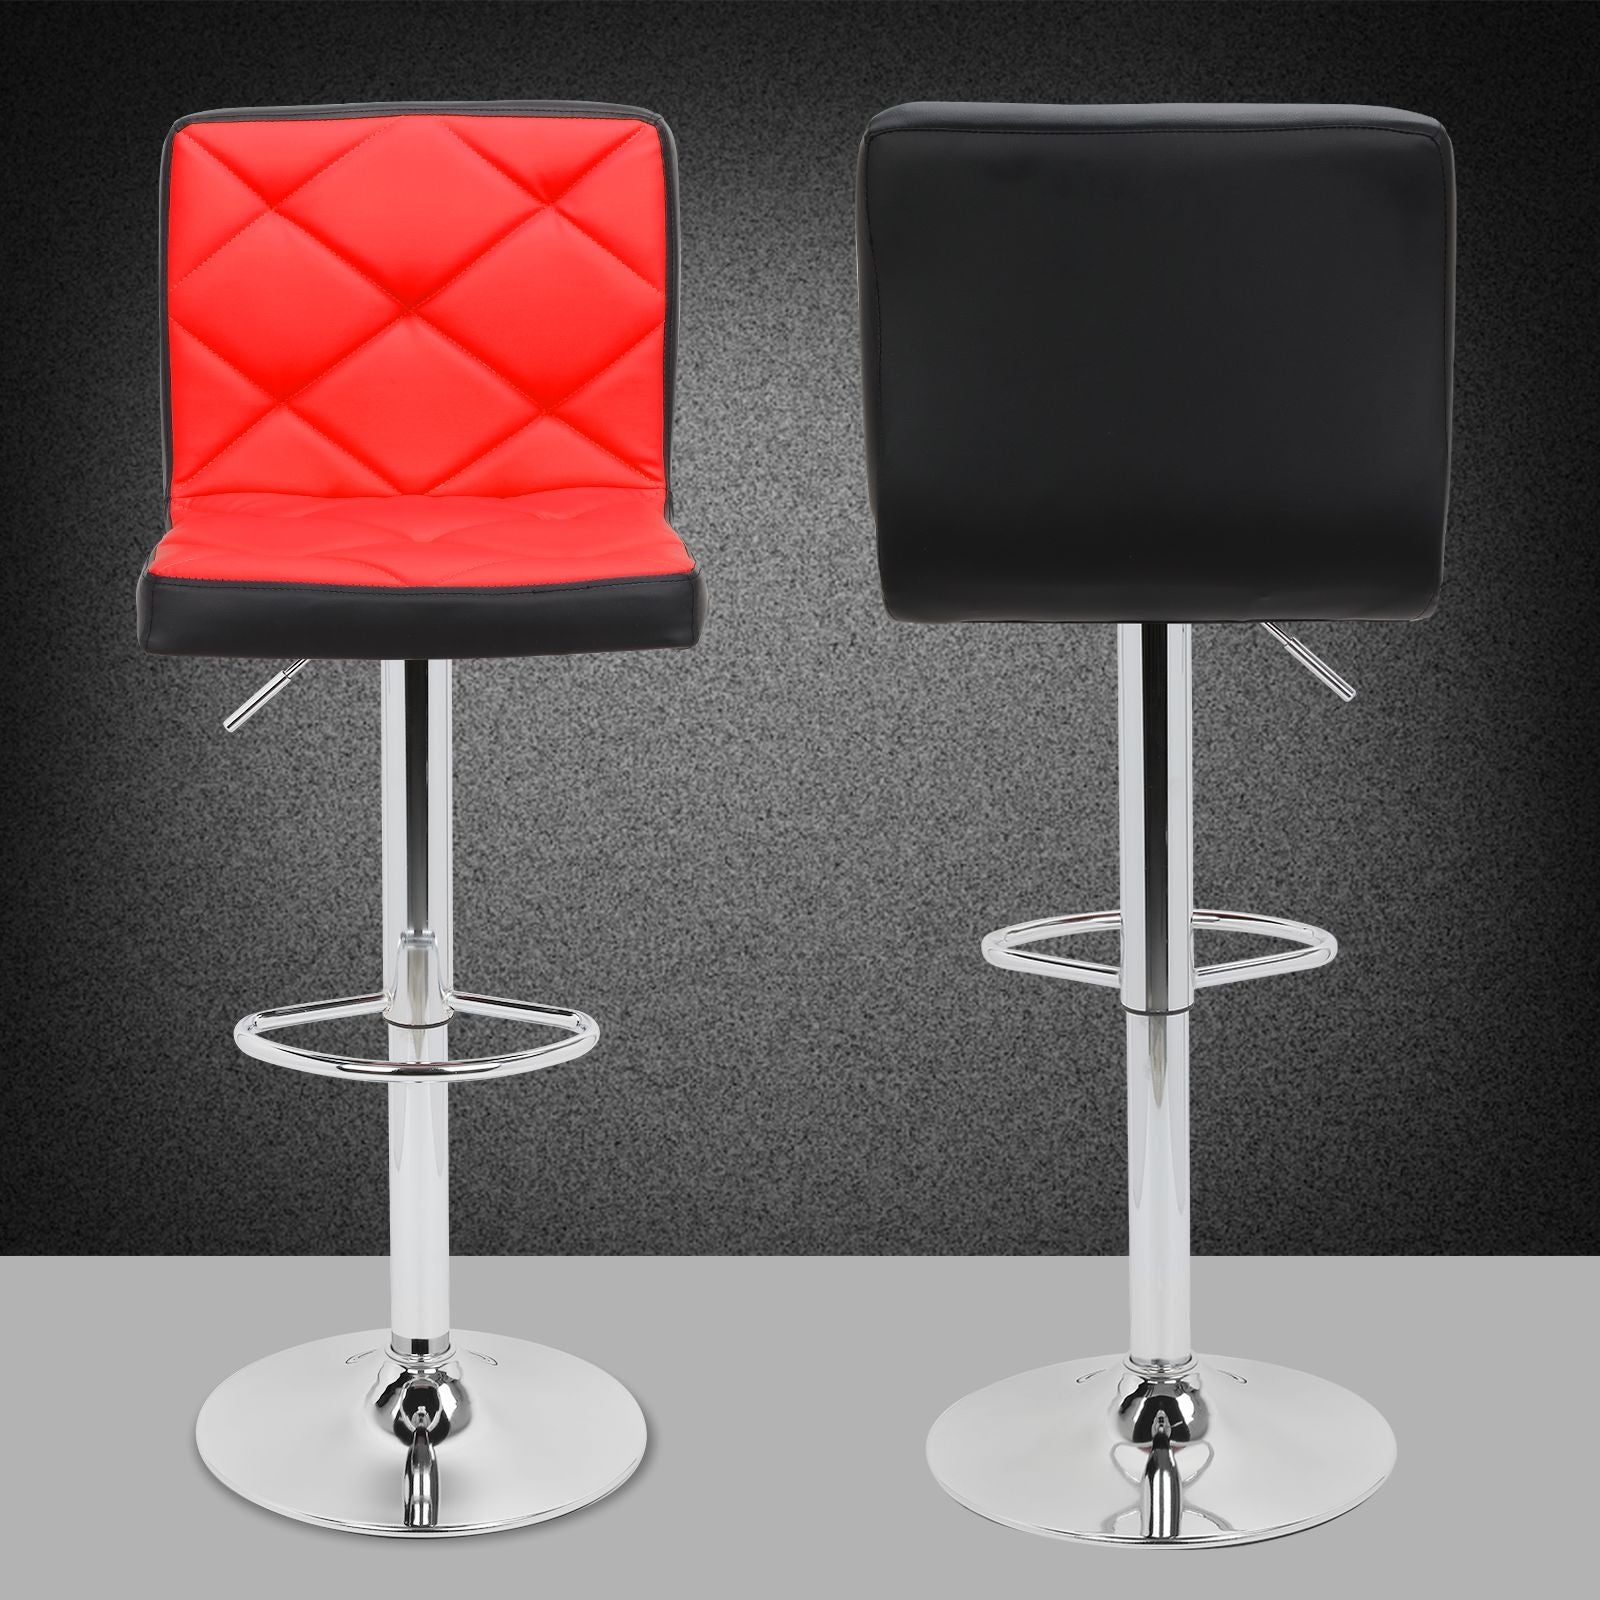 2pc Deluxe Mixed Color Leather Swivel Pub Bar Stools Counter Stools Kitchen Stools with Backs - Red